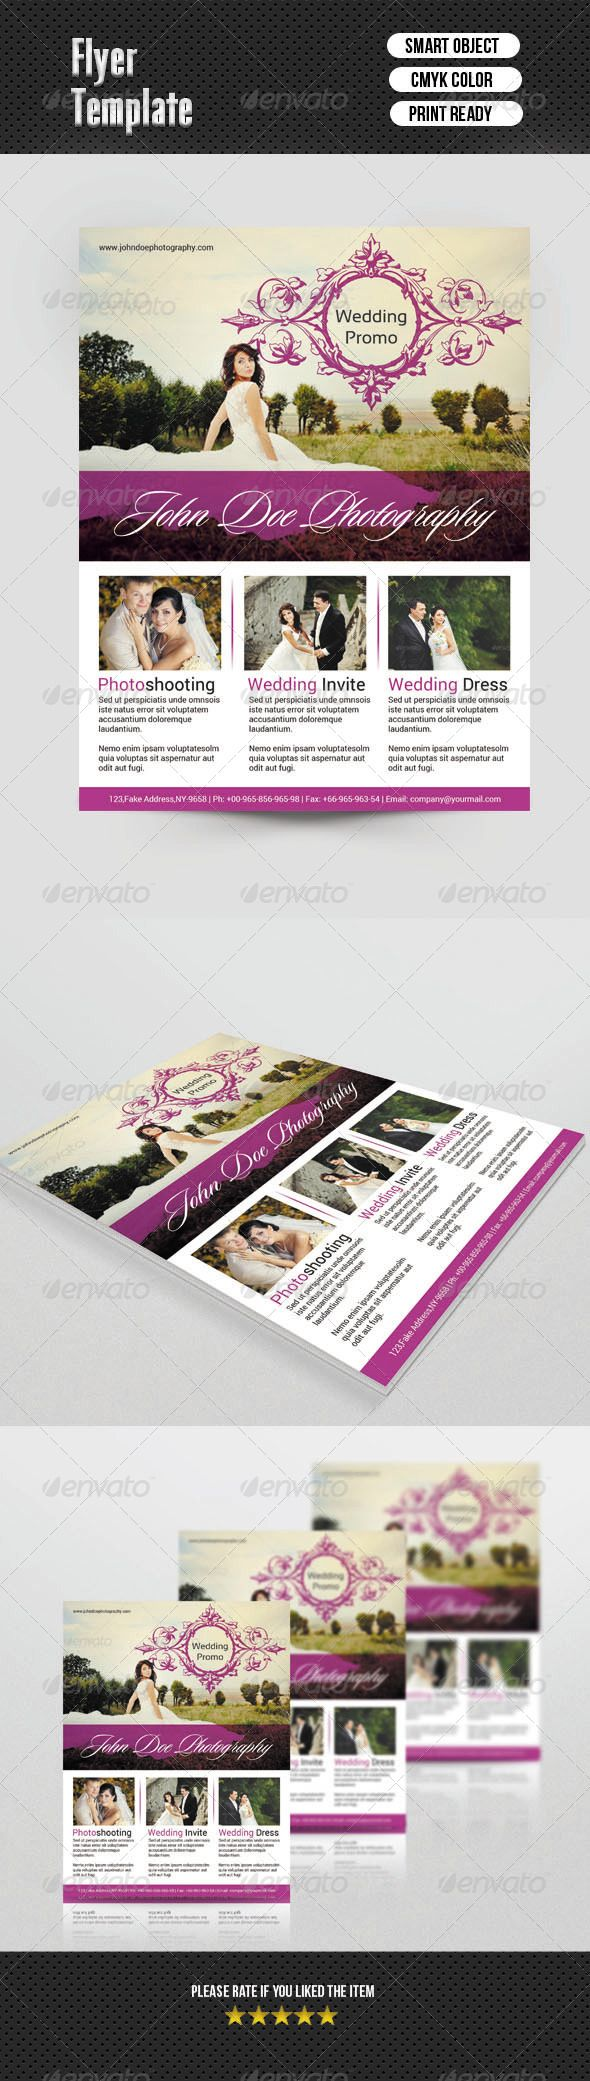 Wedding Photography Flyer — Photoshop Psd #psd #photo • Available Here →  Https://graphicriver.net/item/wedding-Photography-Flyer/6891487?ref=Pxcr